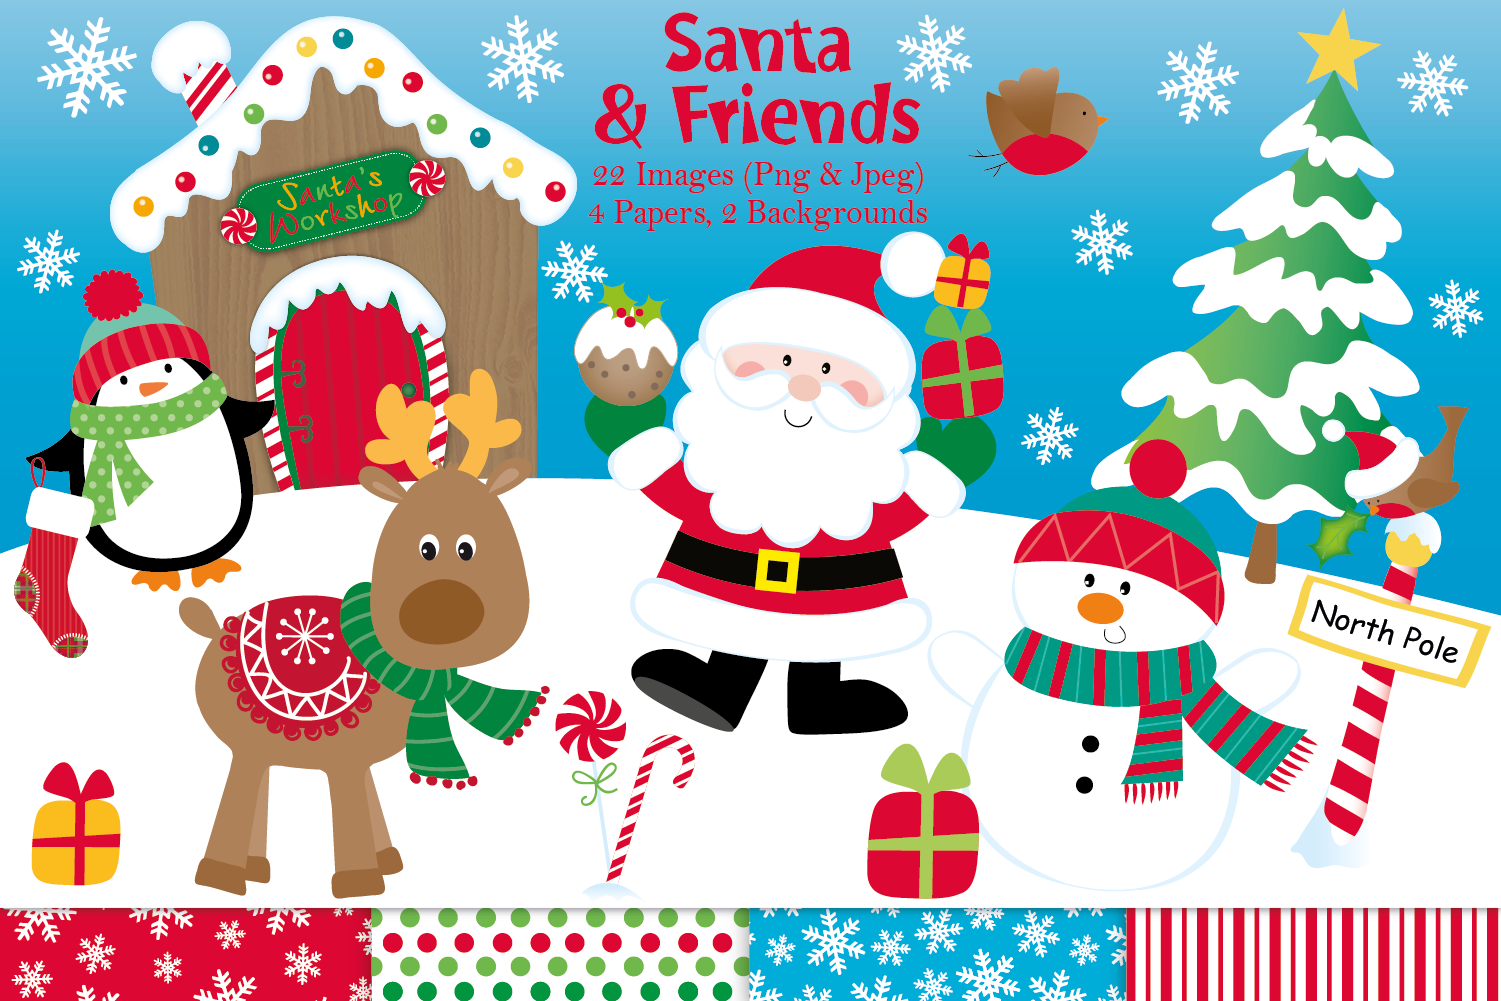 Christmas clipart, Christmas graphics & illustrations, Santa.